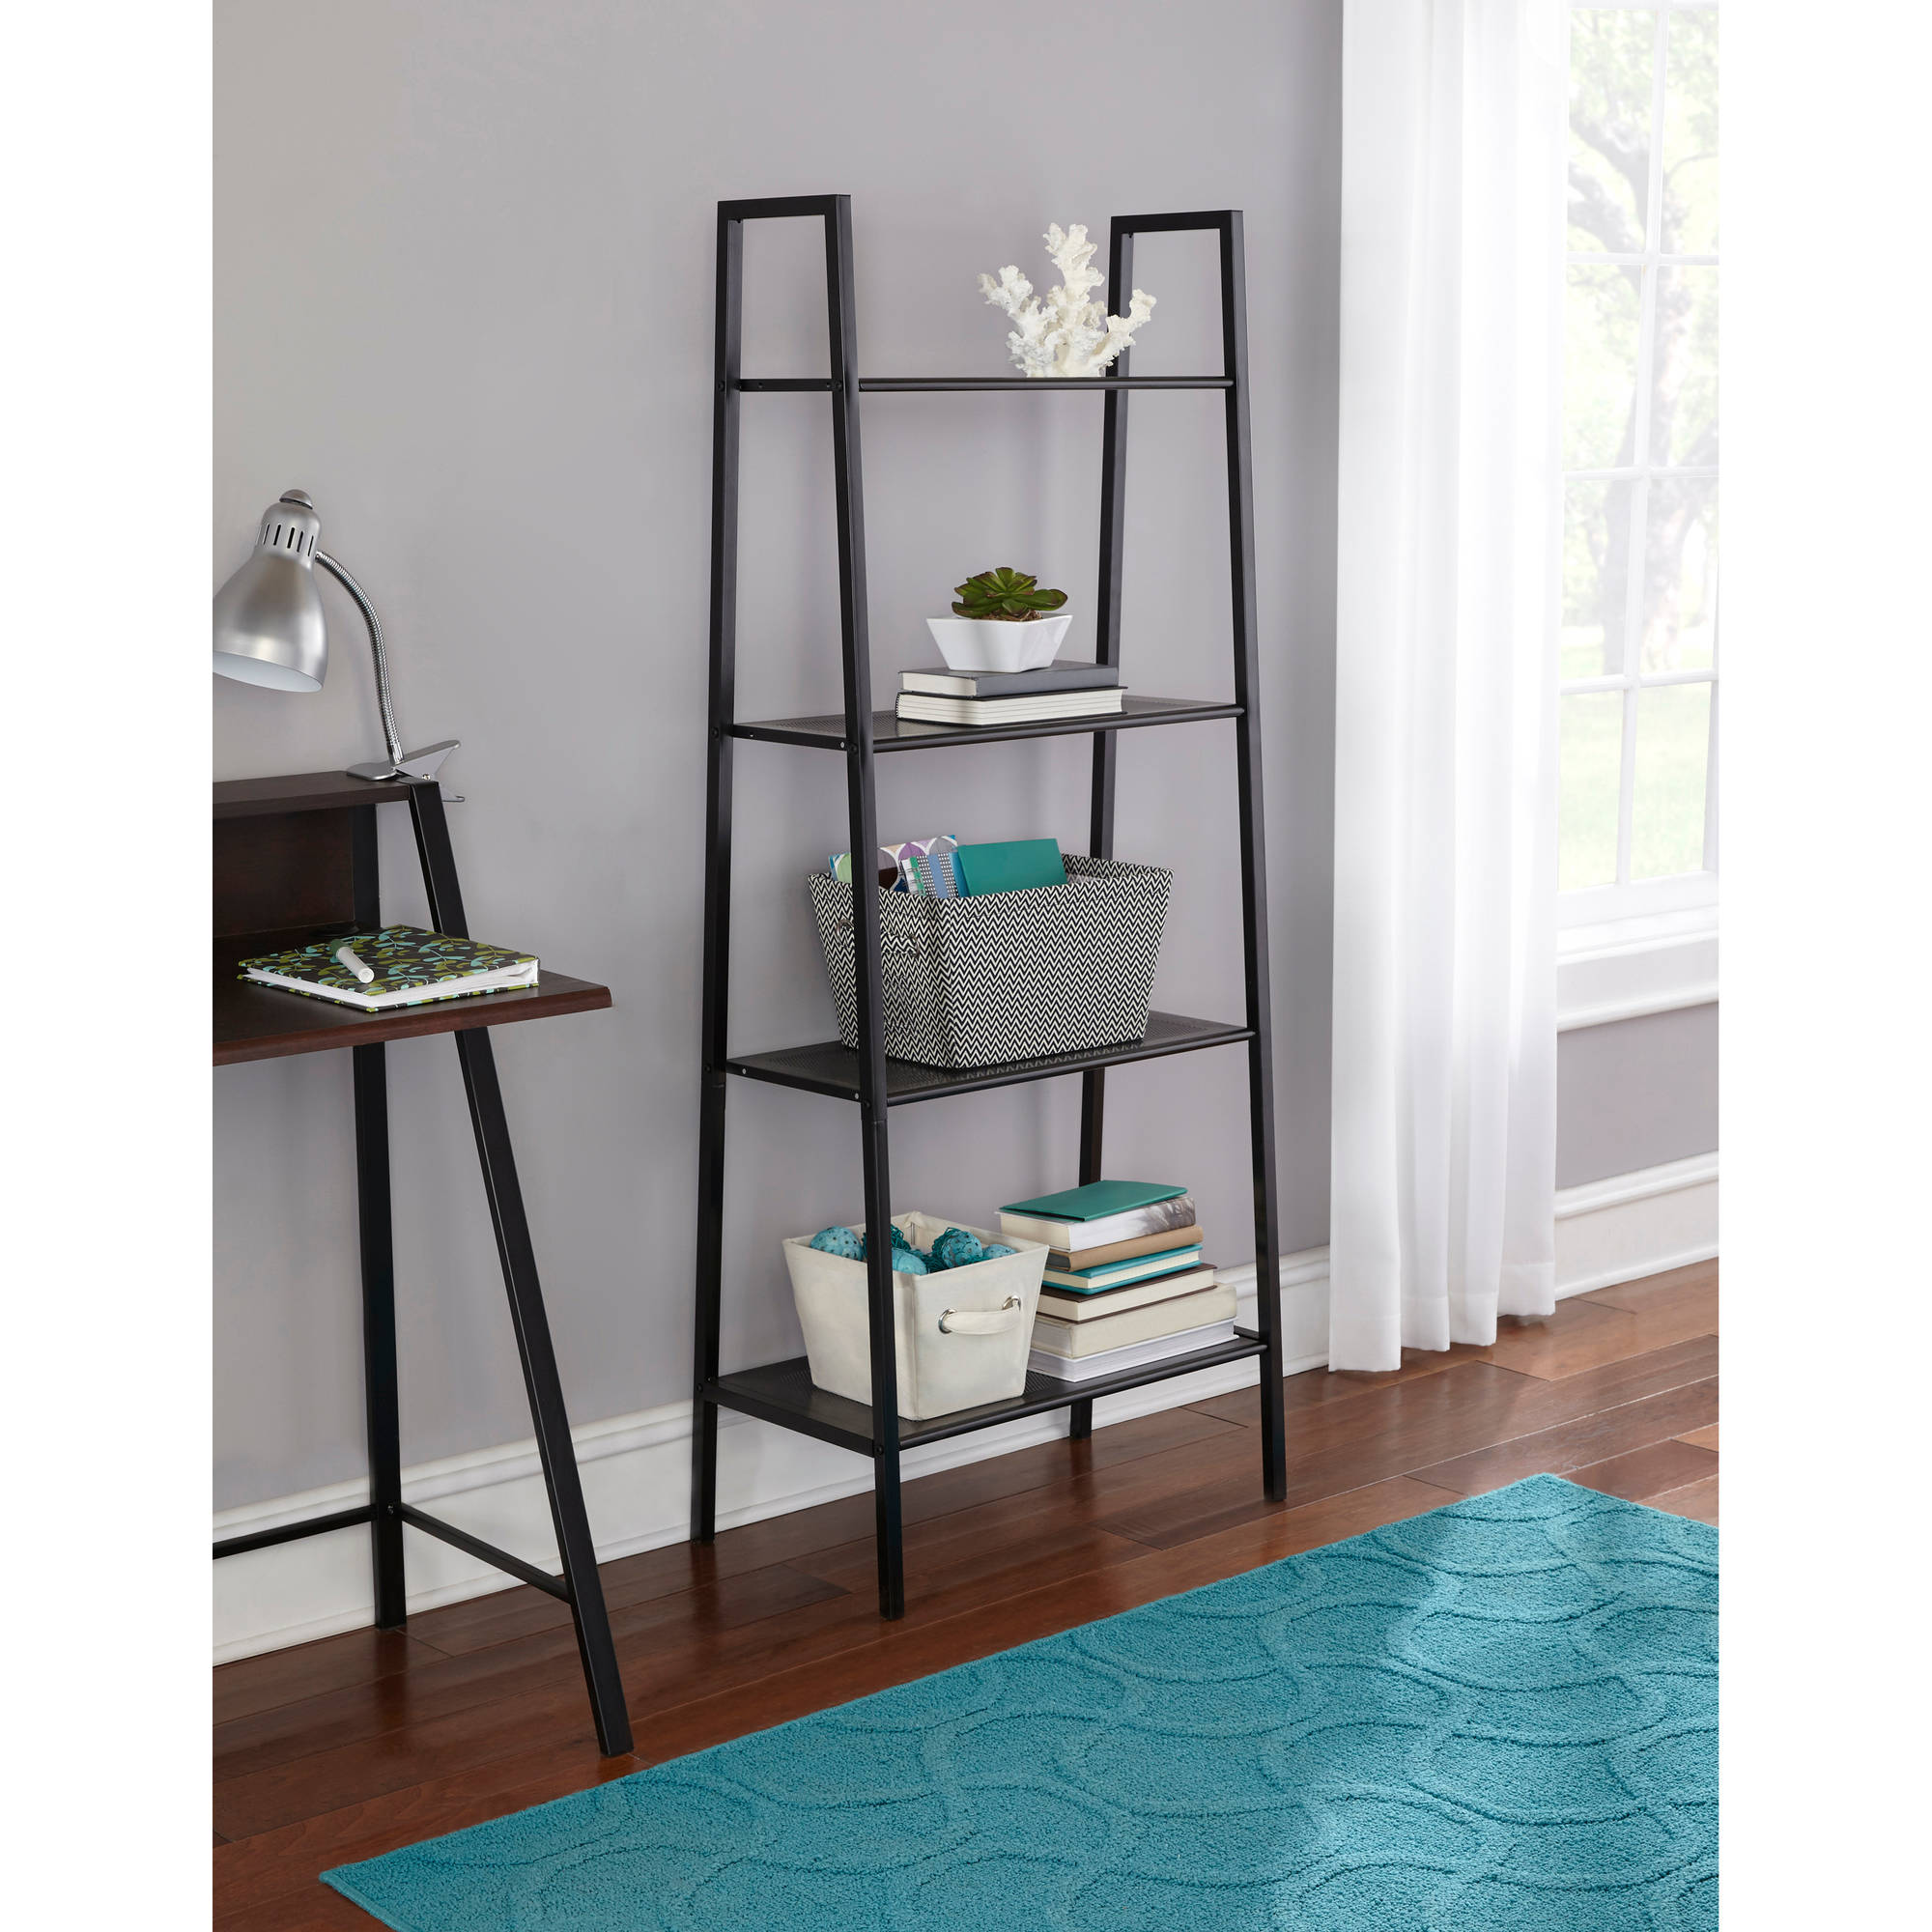 Storage Shelves at Walmart | Walmart Shelving Unit | Walmart Shelving